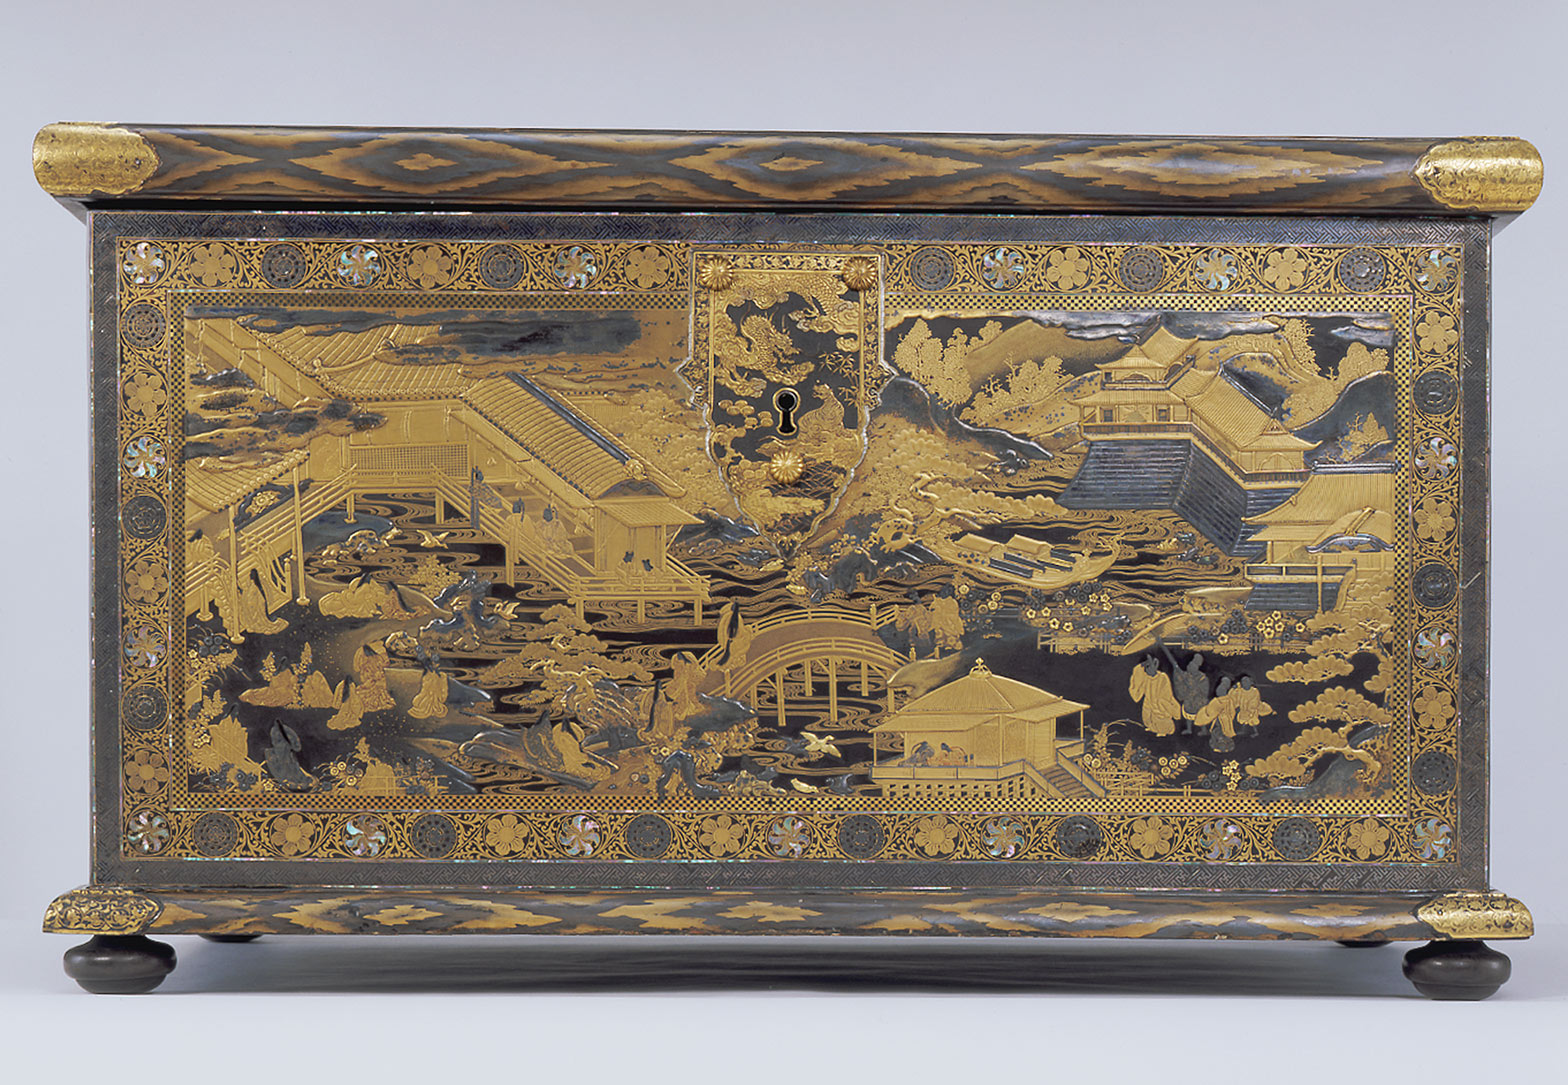 A rectangular Japanese chest covered with detailed lacquer in black and gold